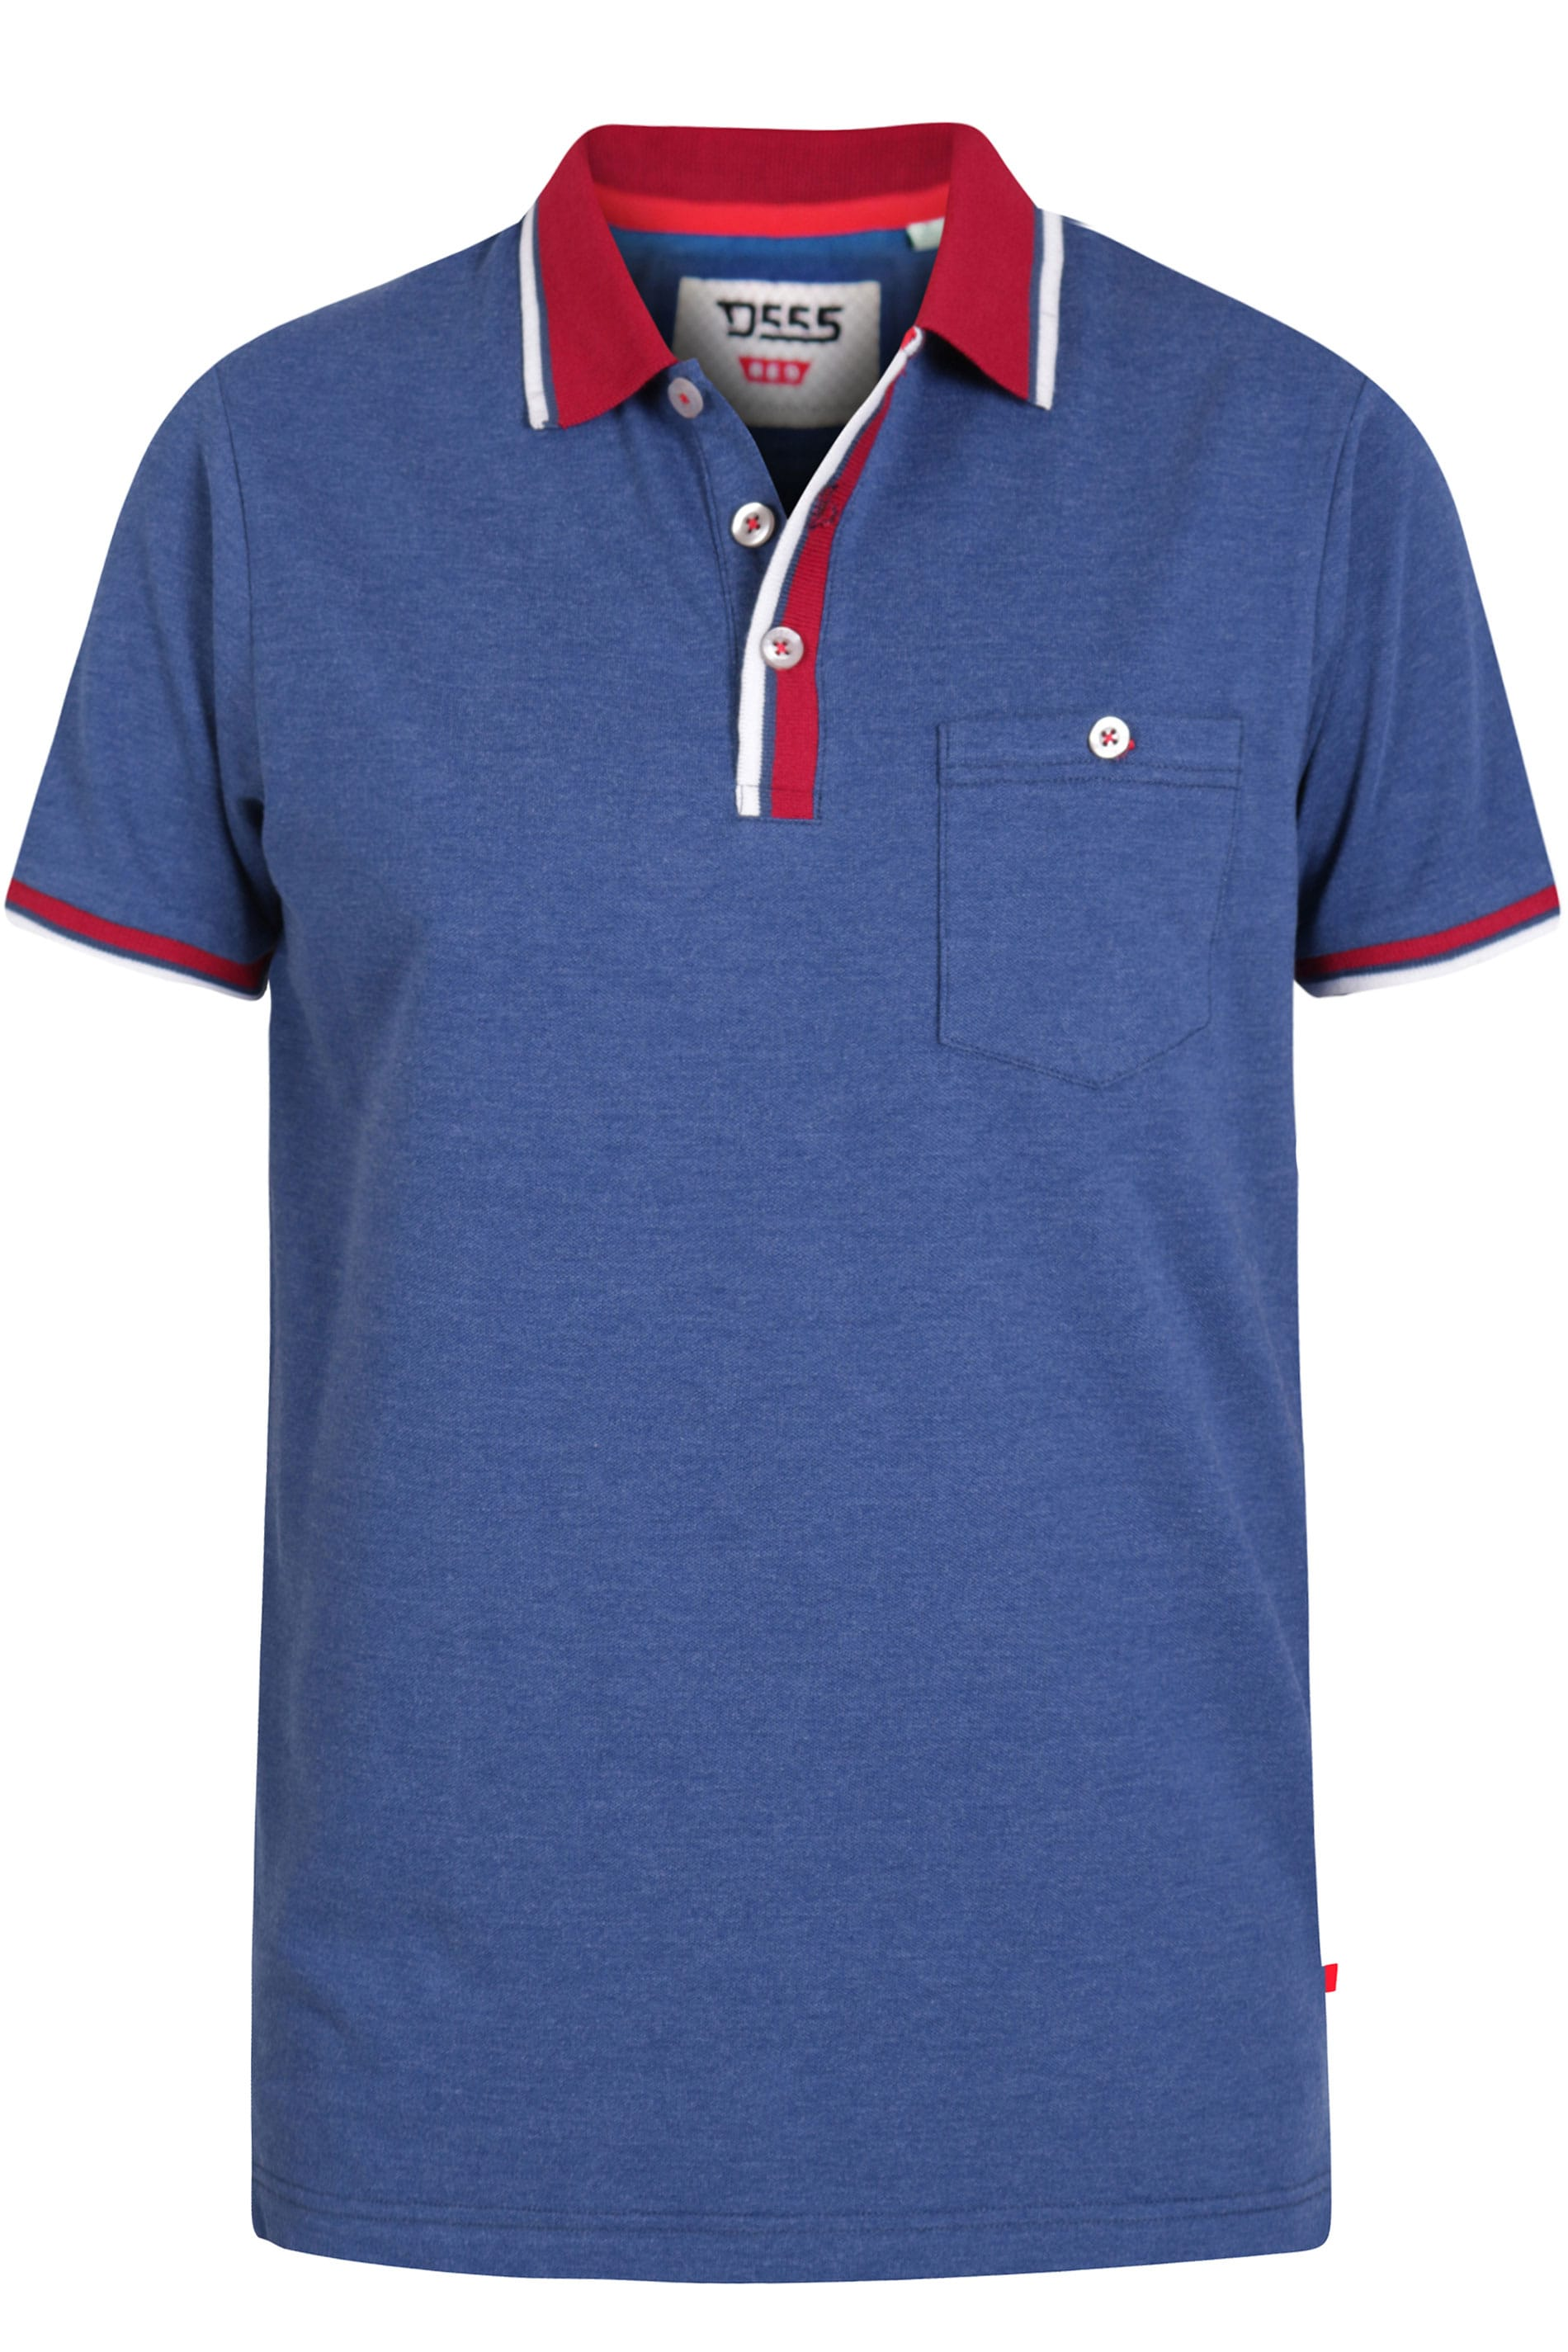 D555 Blue Marl Polo Shirt